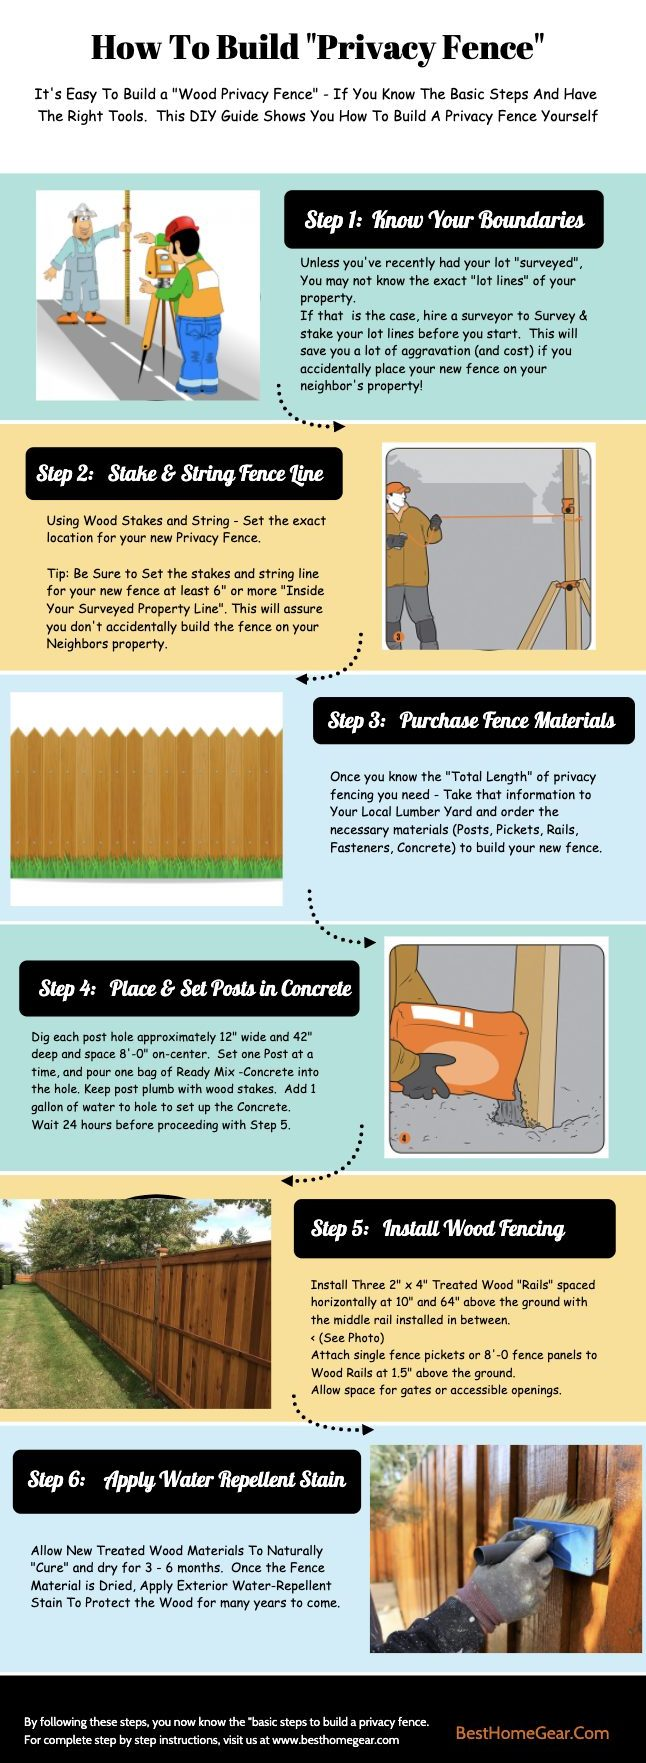 How To Build Privacy Fence